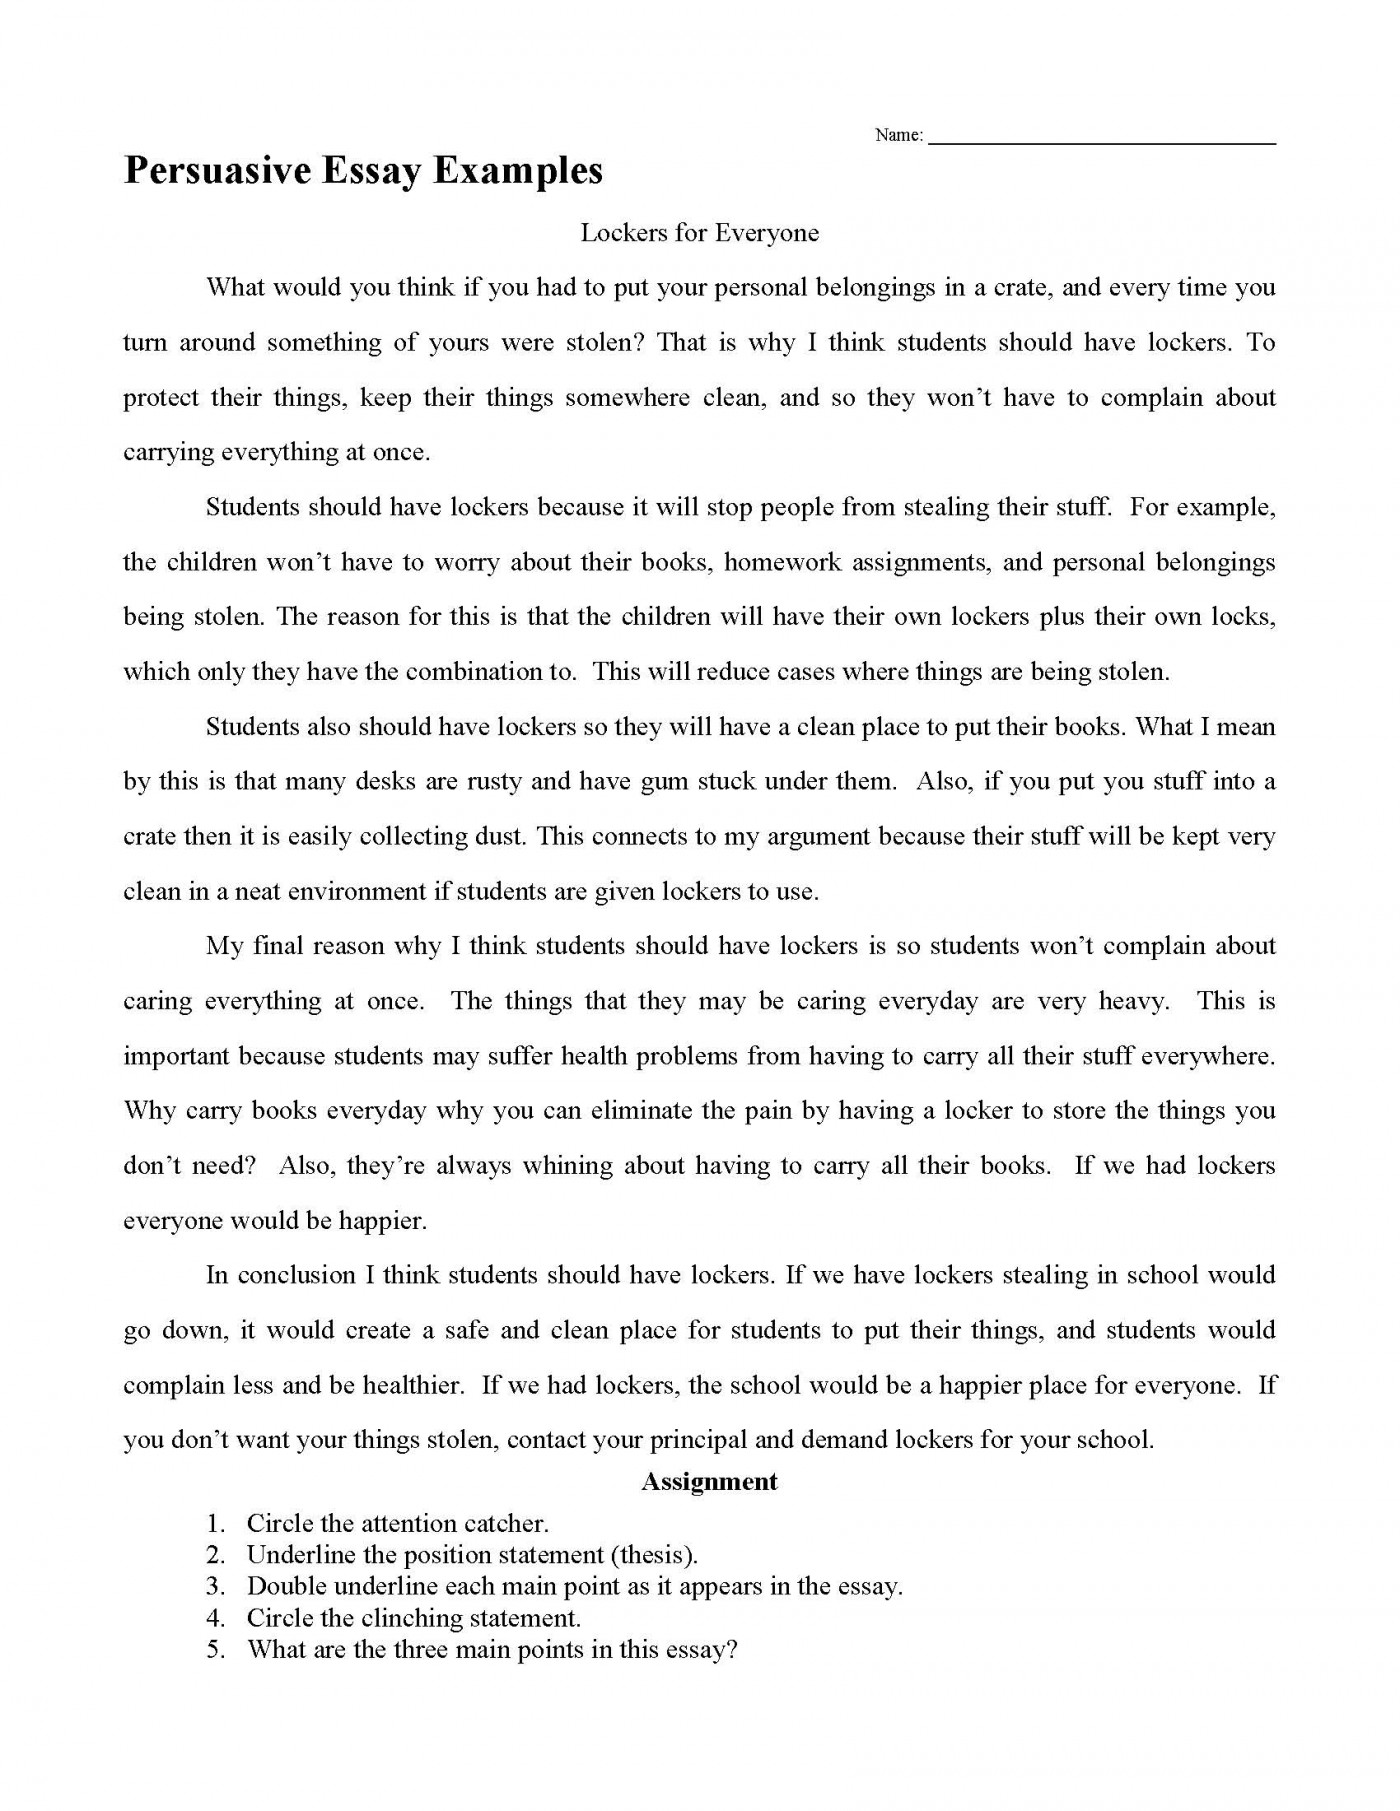 007 Research Paper Persuasive Essay Examples Controversial Psychology Topics Surprising For 1400